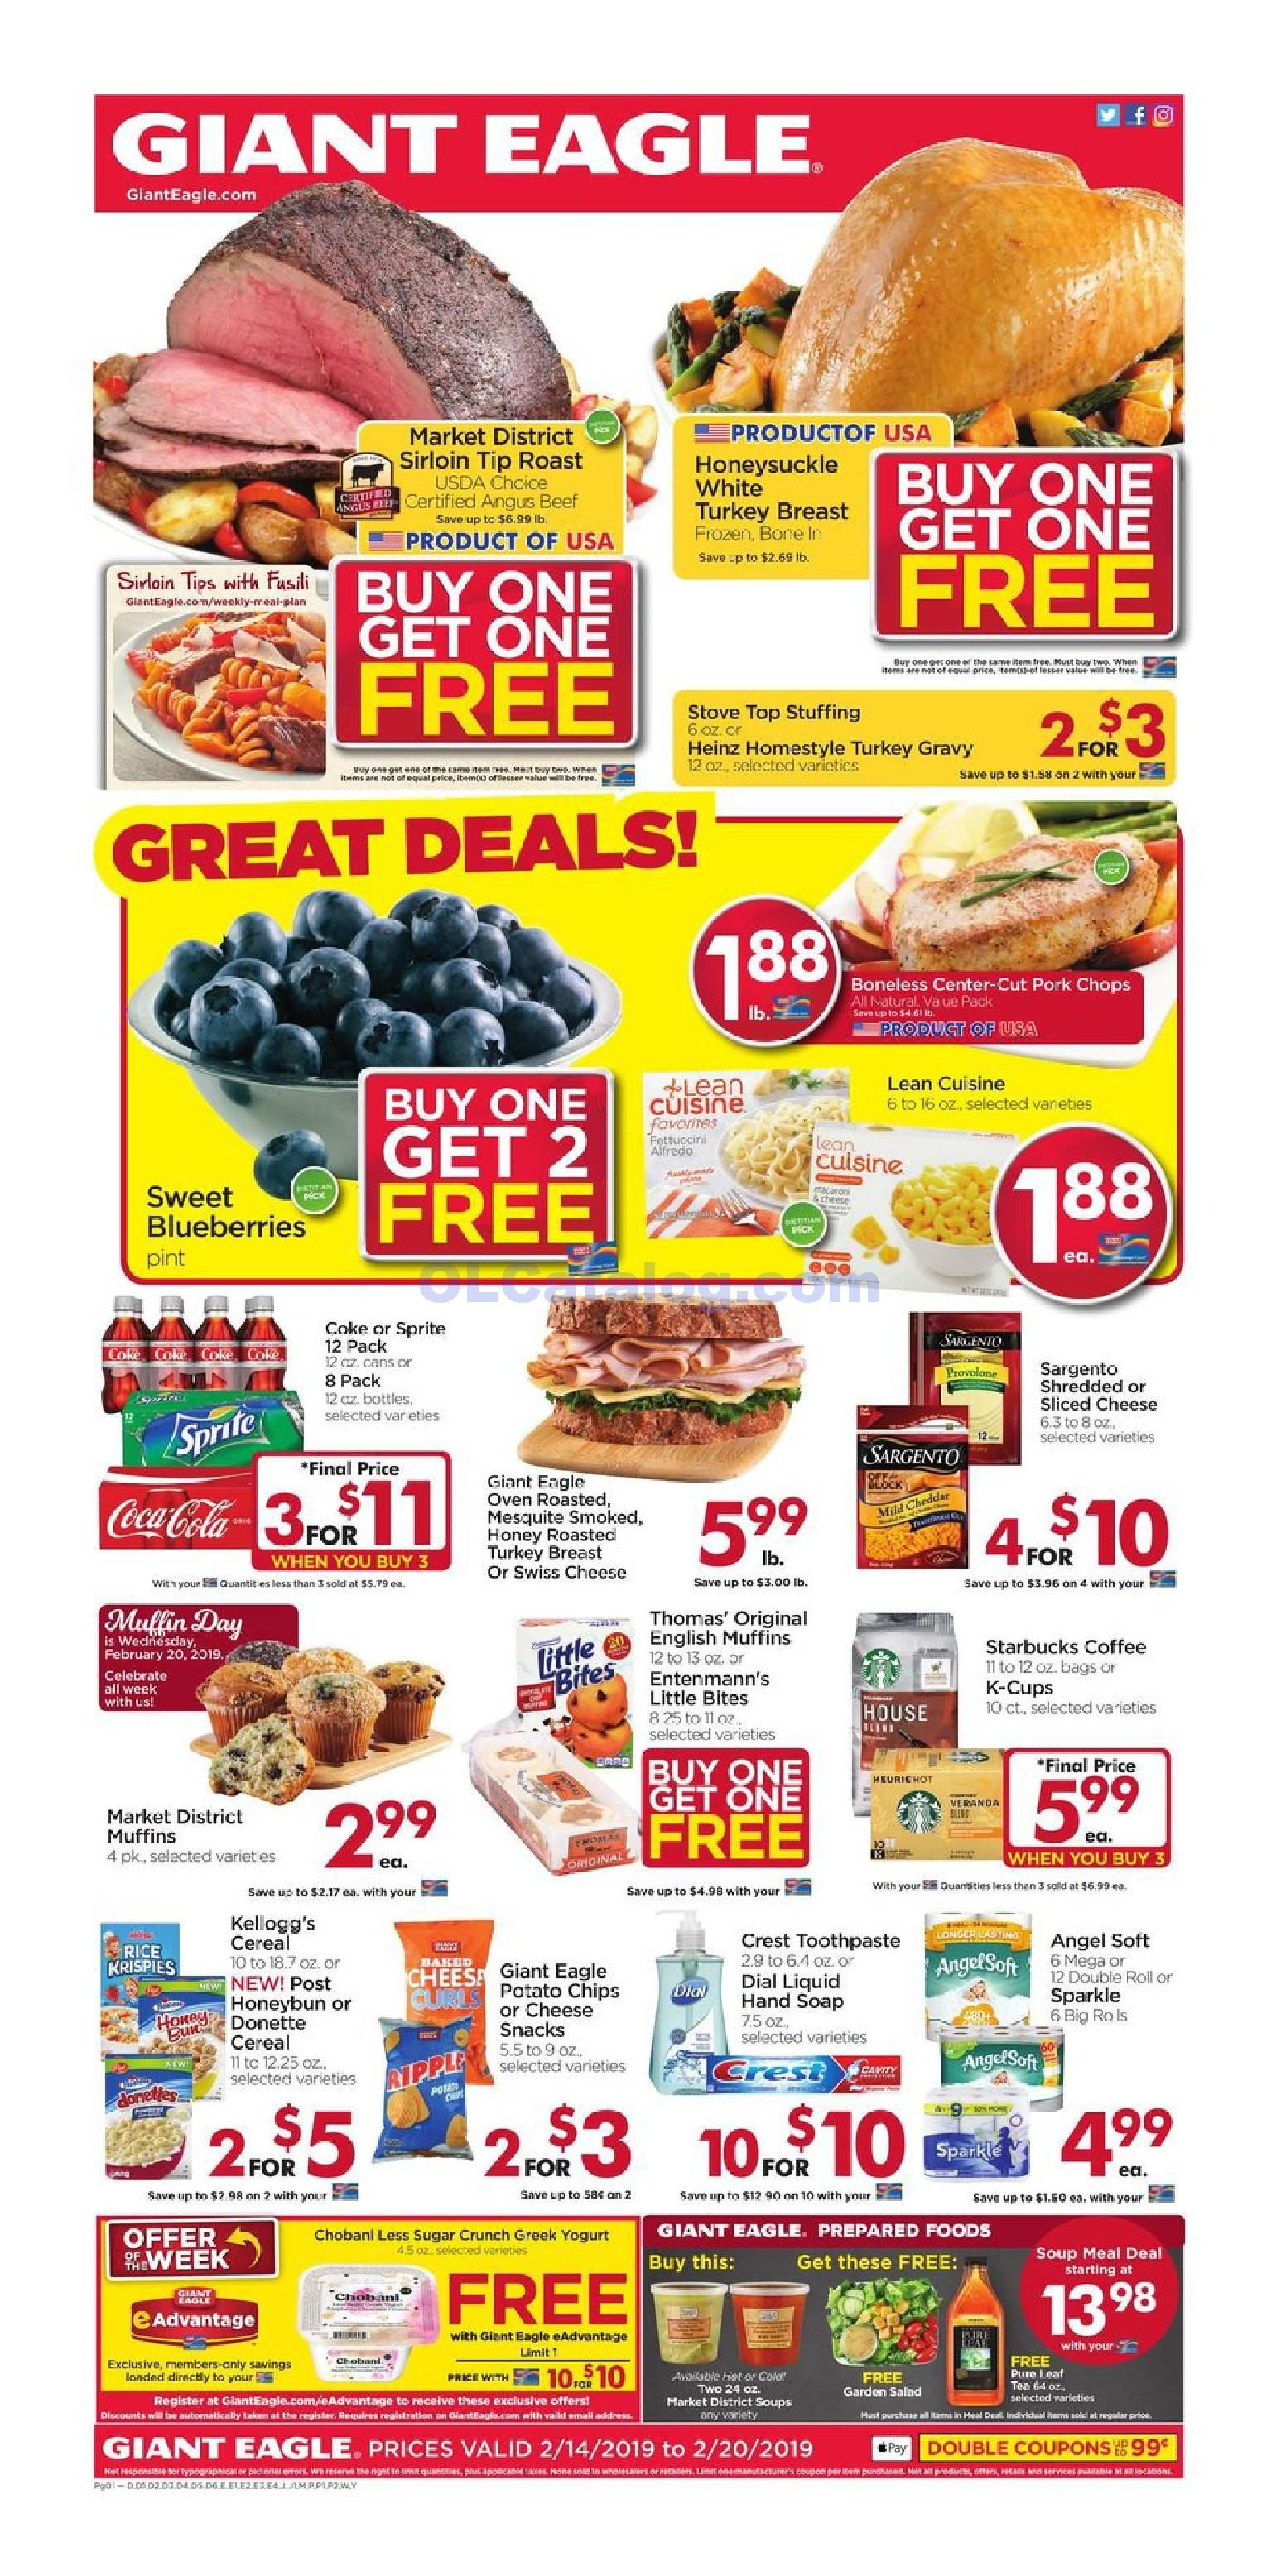 Giant Eagle Weekly Ad Mar 26 Apr 1 2020 Sneak Peek Preview